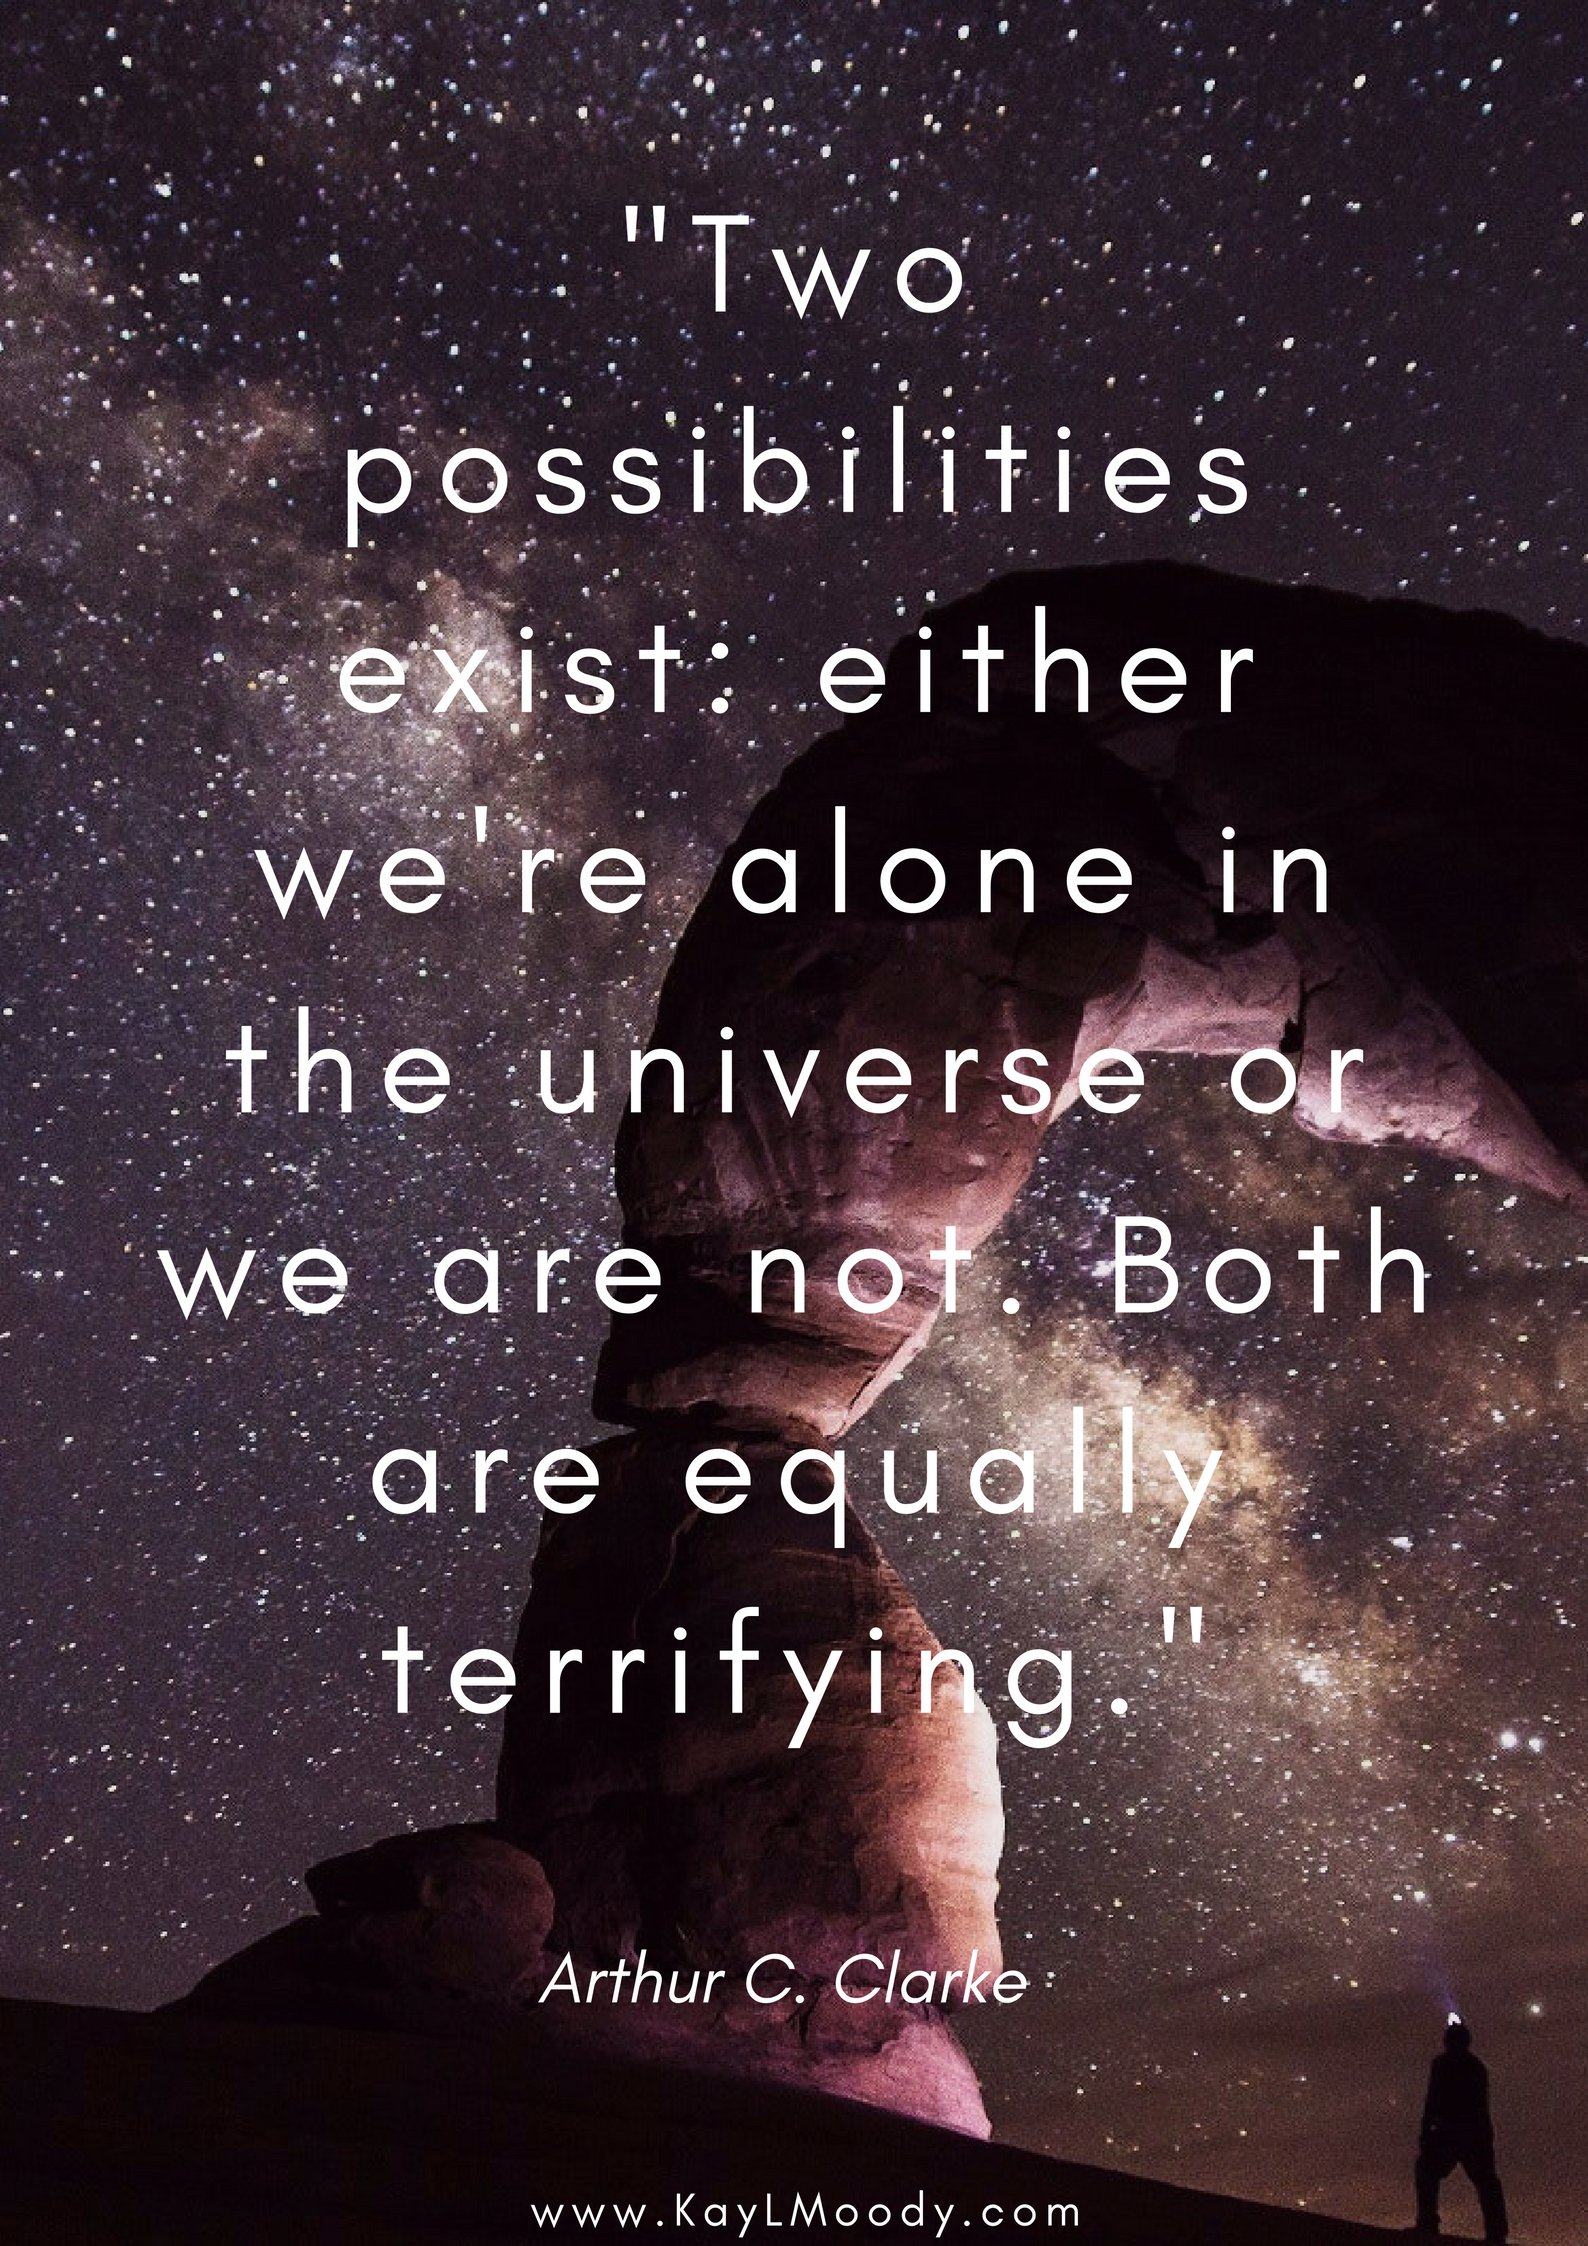 Best Book Quotes, Love Quotes from Book, Sci Fi Book Quotes ...